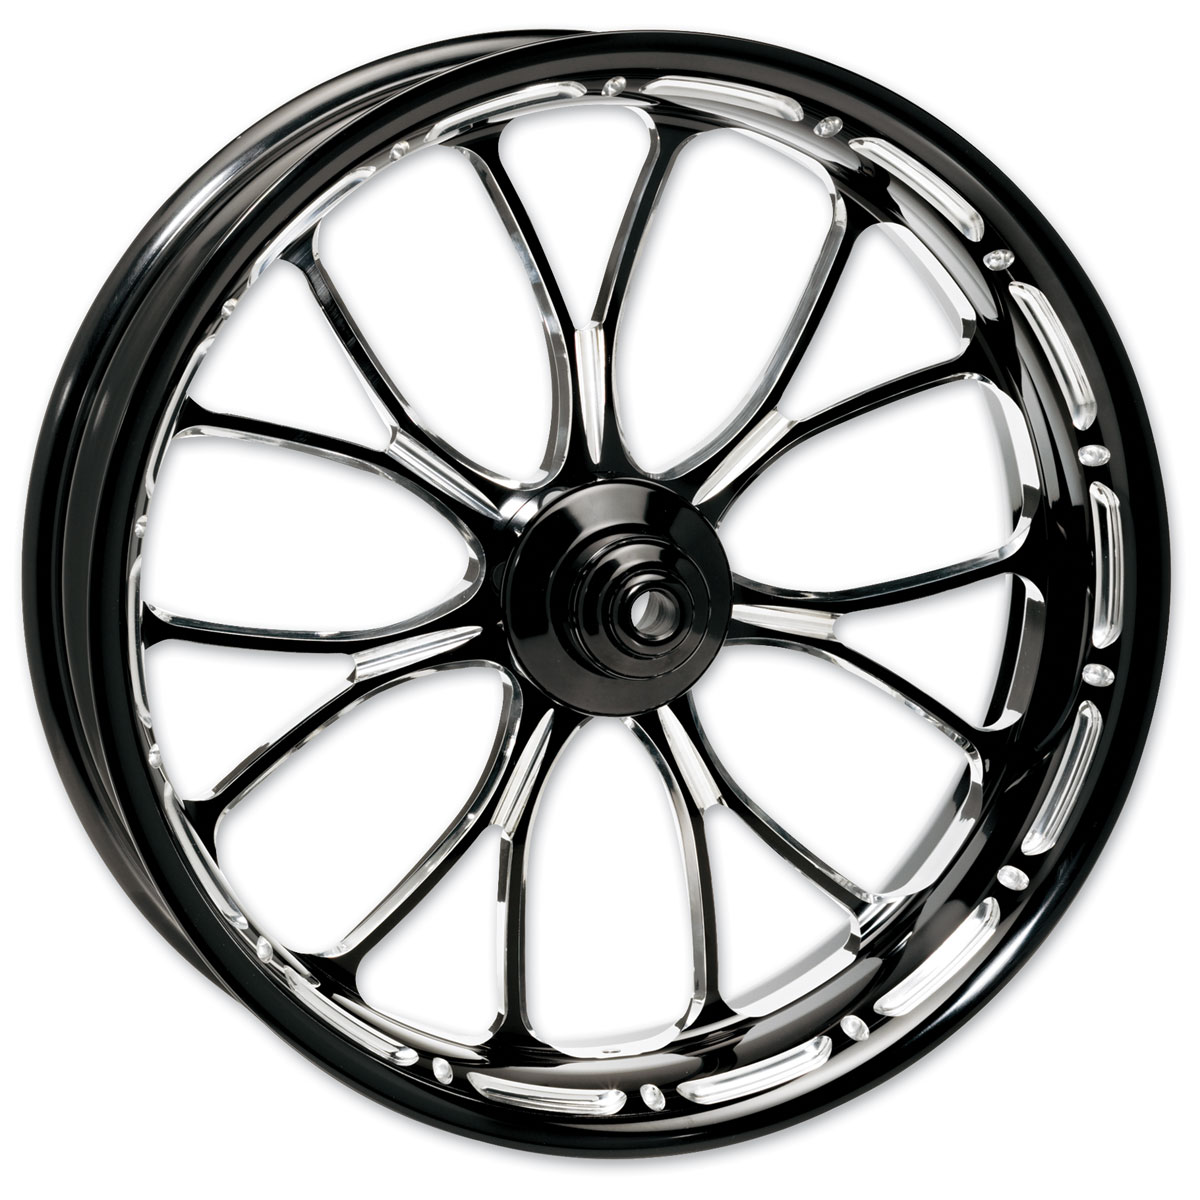 Performance Machine Heathen Platinum Cut Rear Wheel 18x3.5 Non-ABS